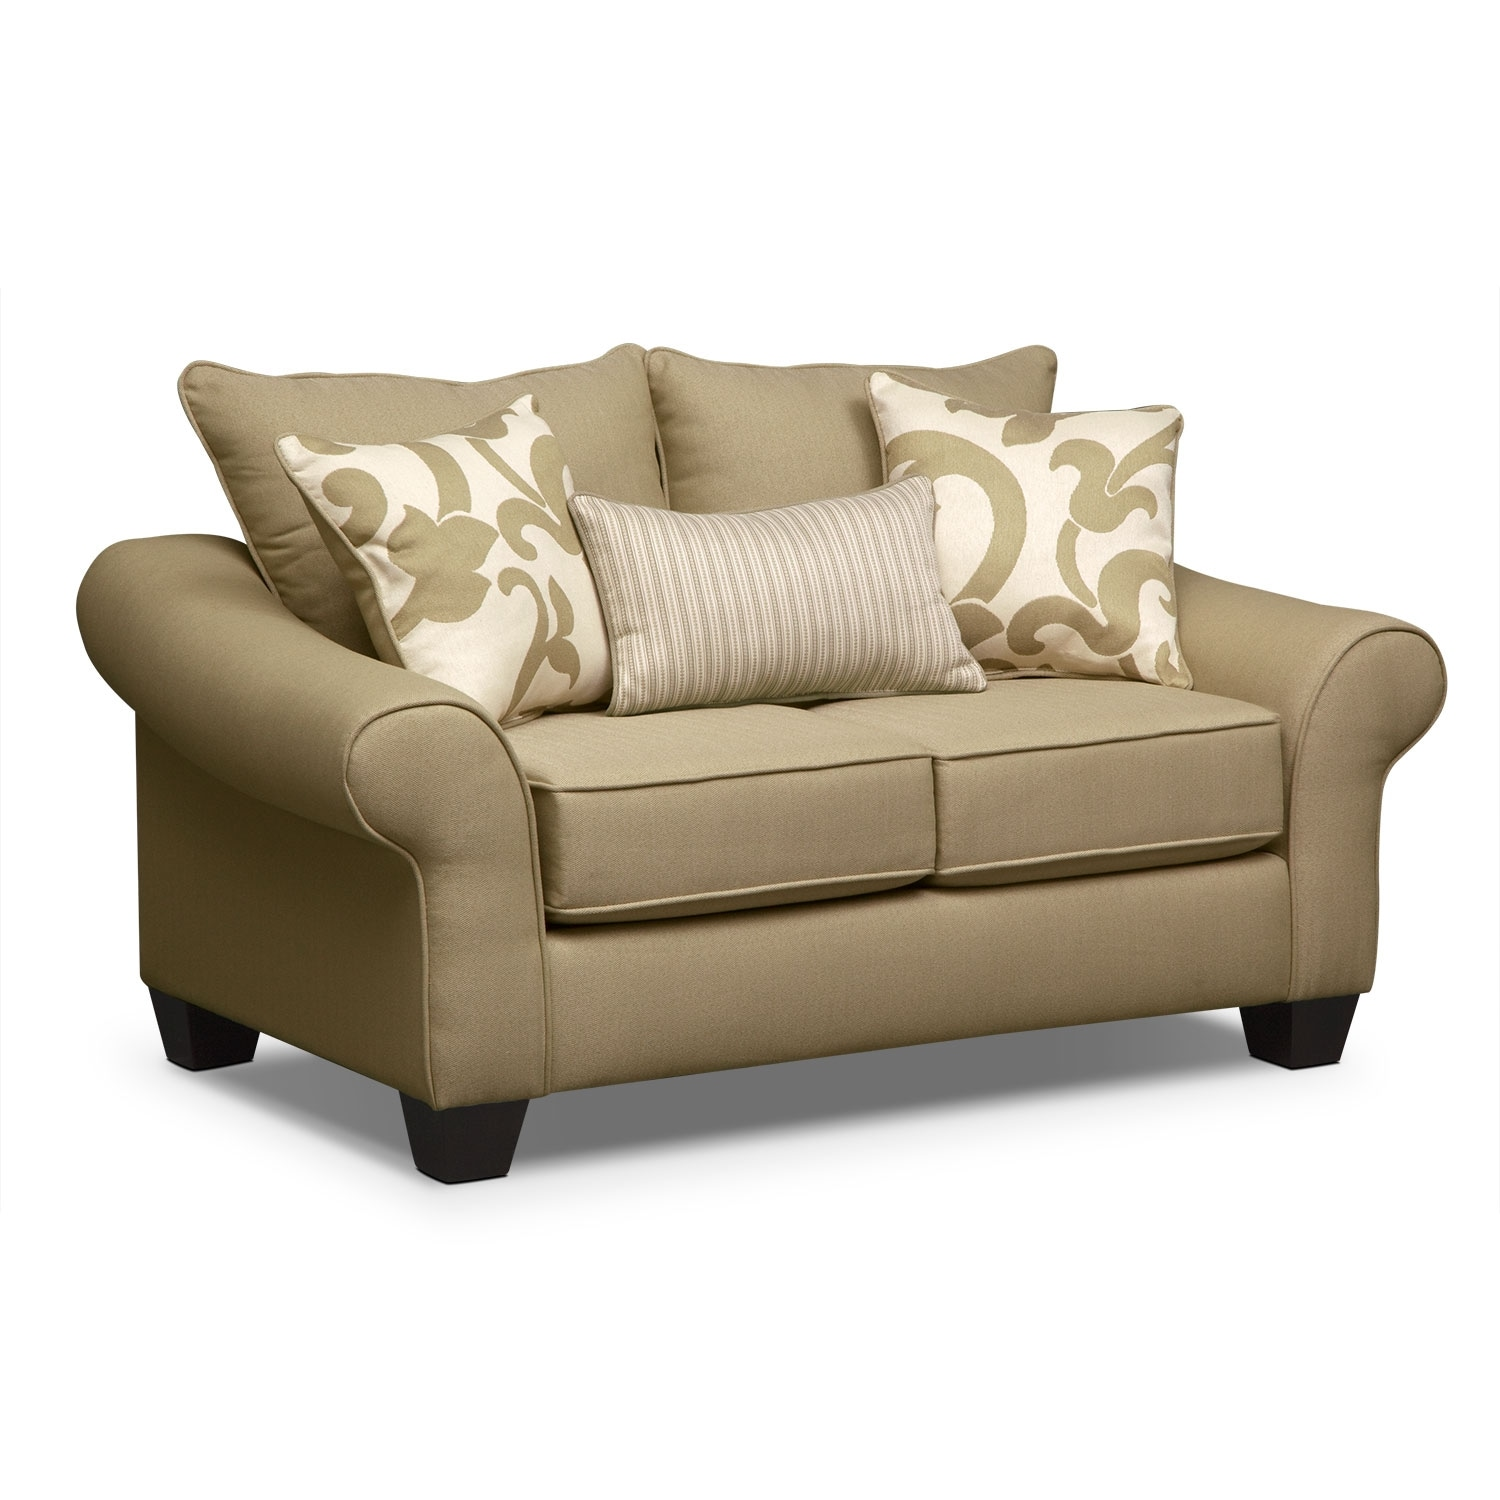 Living Room Furniture - Colette Loveseat - Khaki